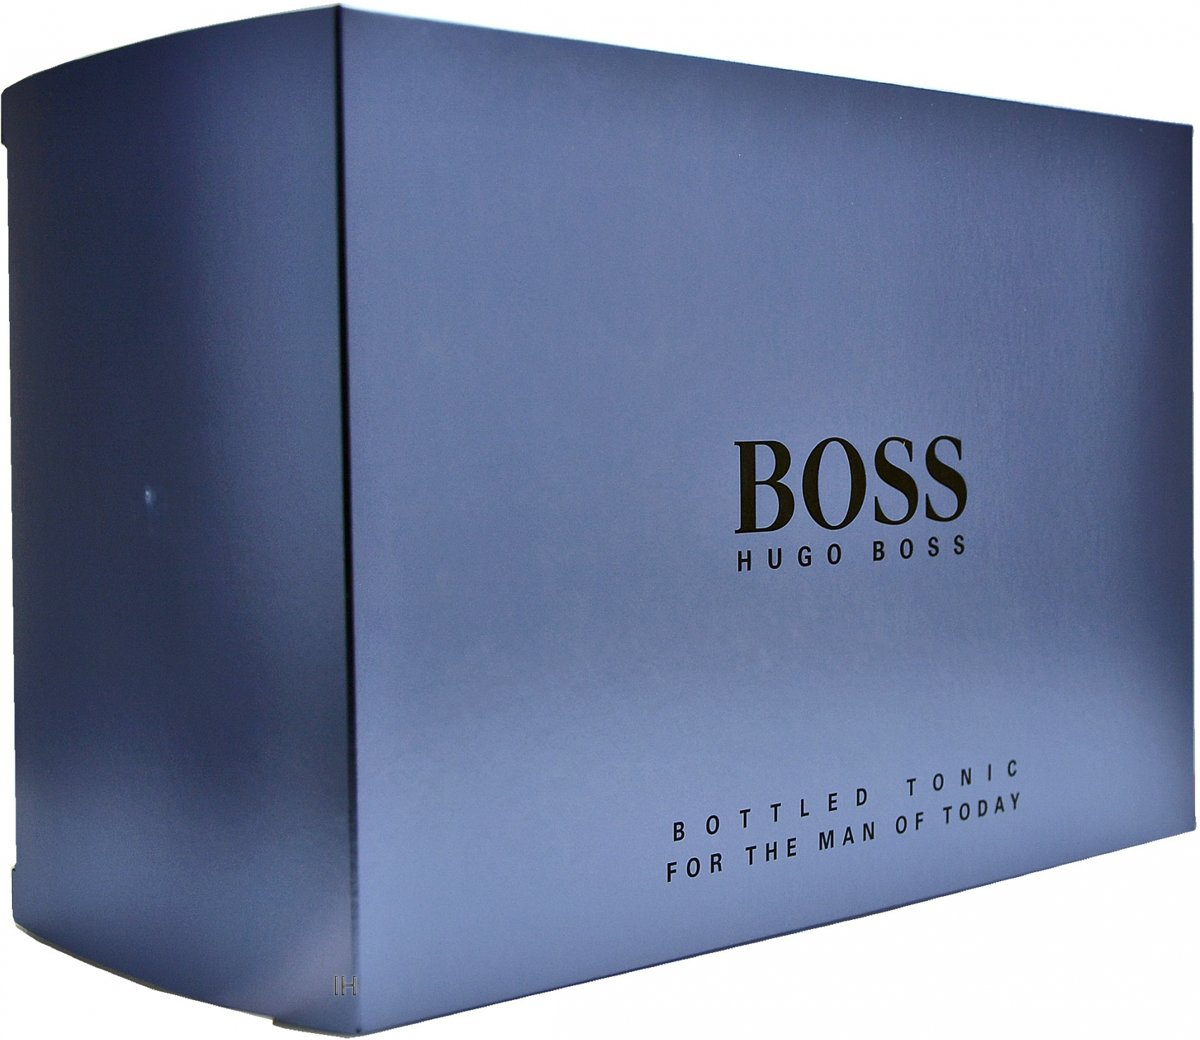 Hugo Boss Bottled Tonic 100 ml edt + 8 ml edt + Toillettas set set